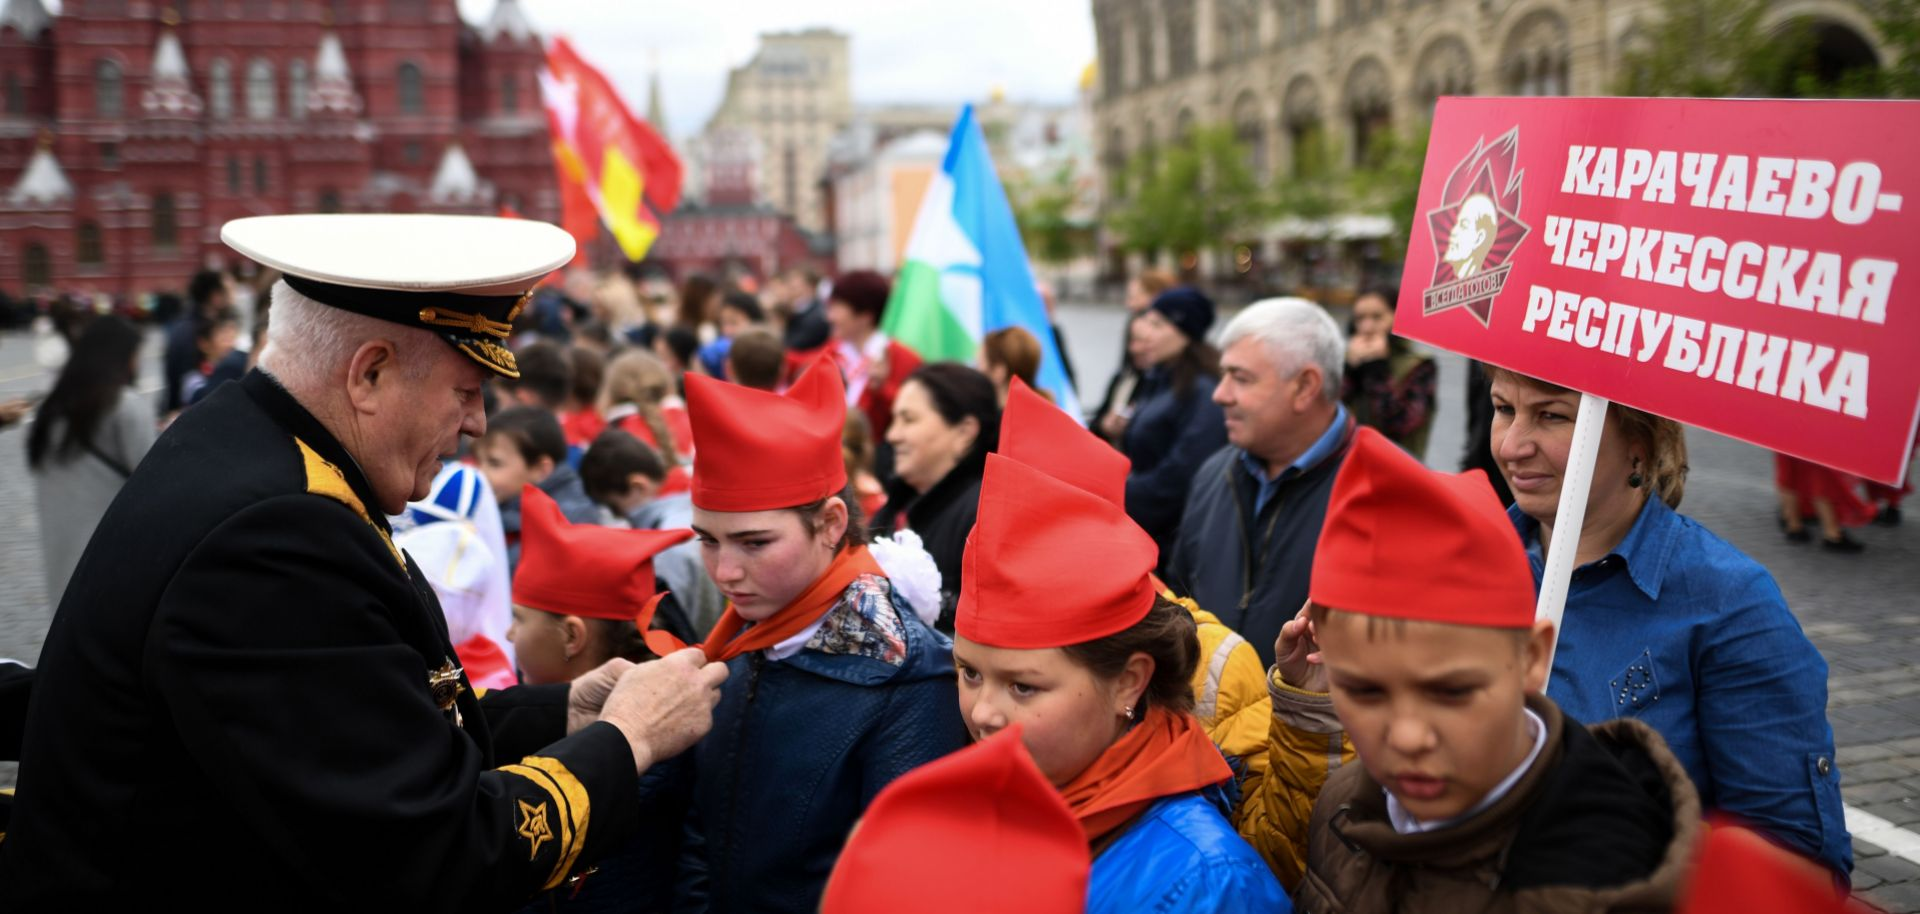 Russian children are initiated into the Communist Party's Young Pioneer group. The Party's efforts to rebrand itself include attracting more young Russians to join its youth organizations.